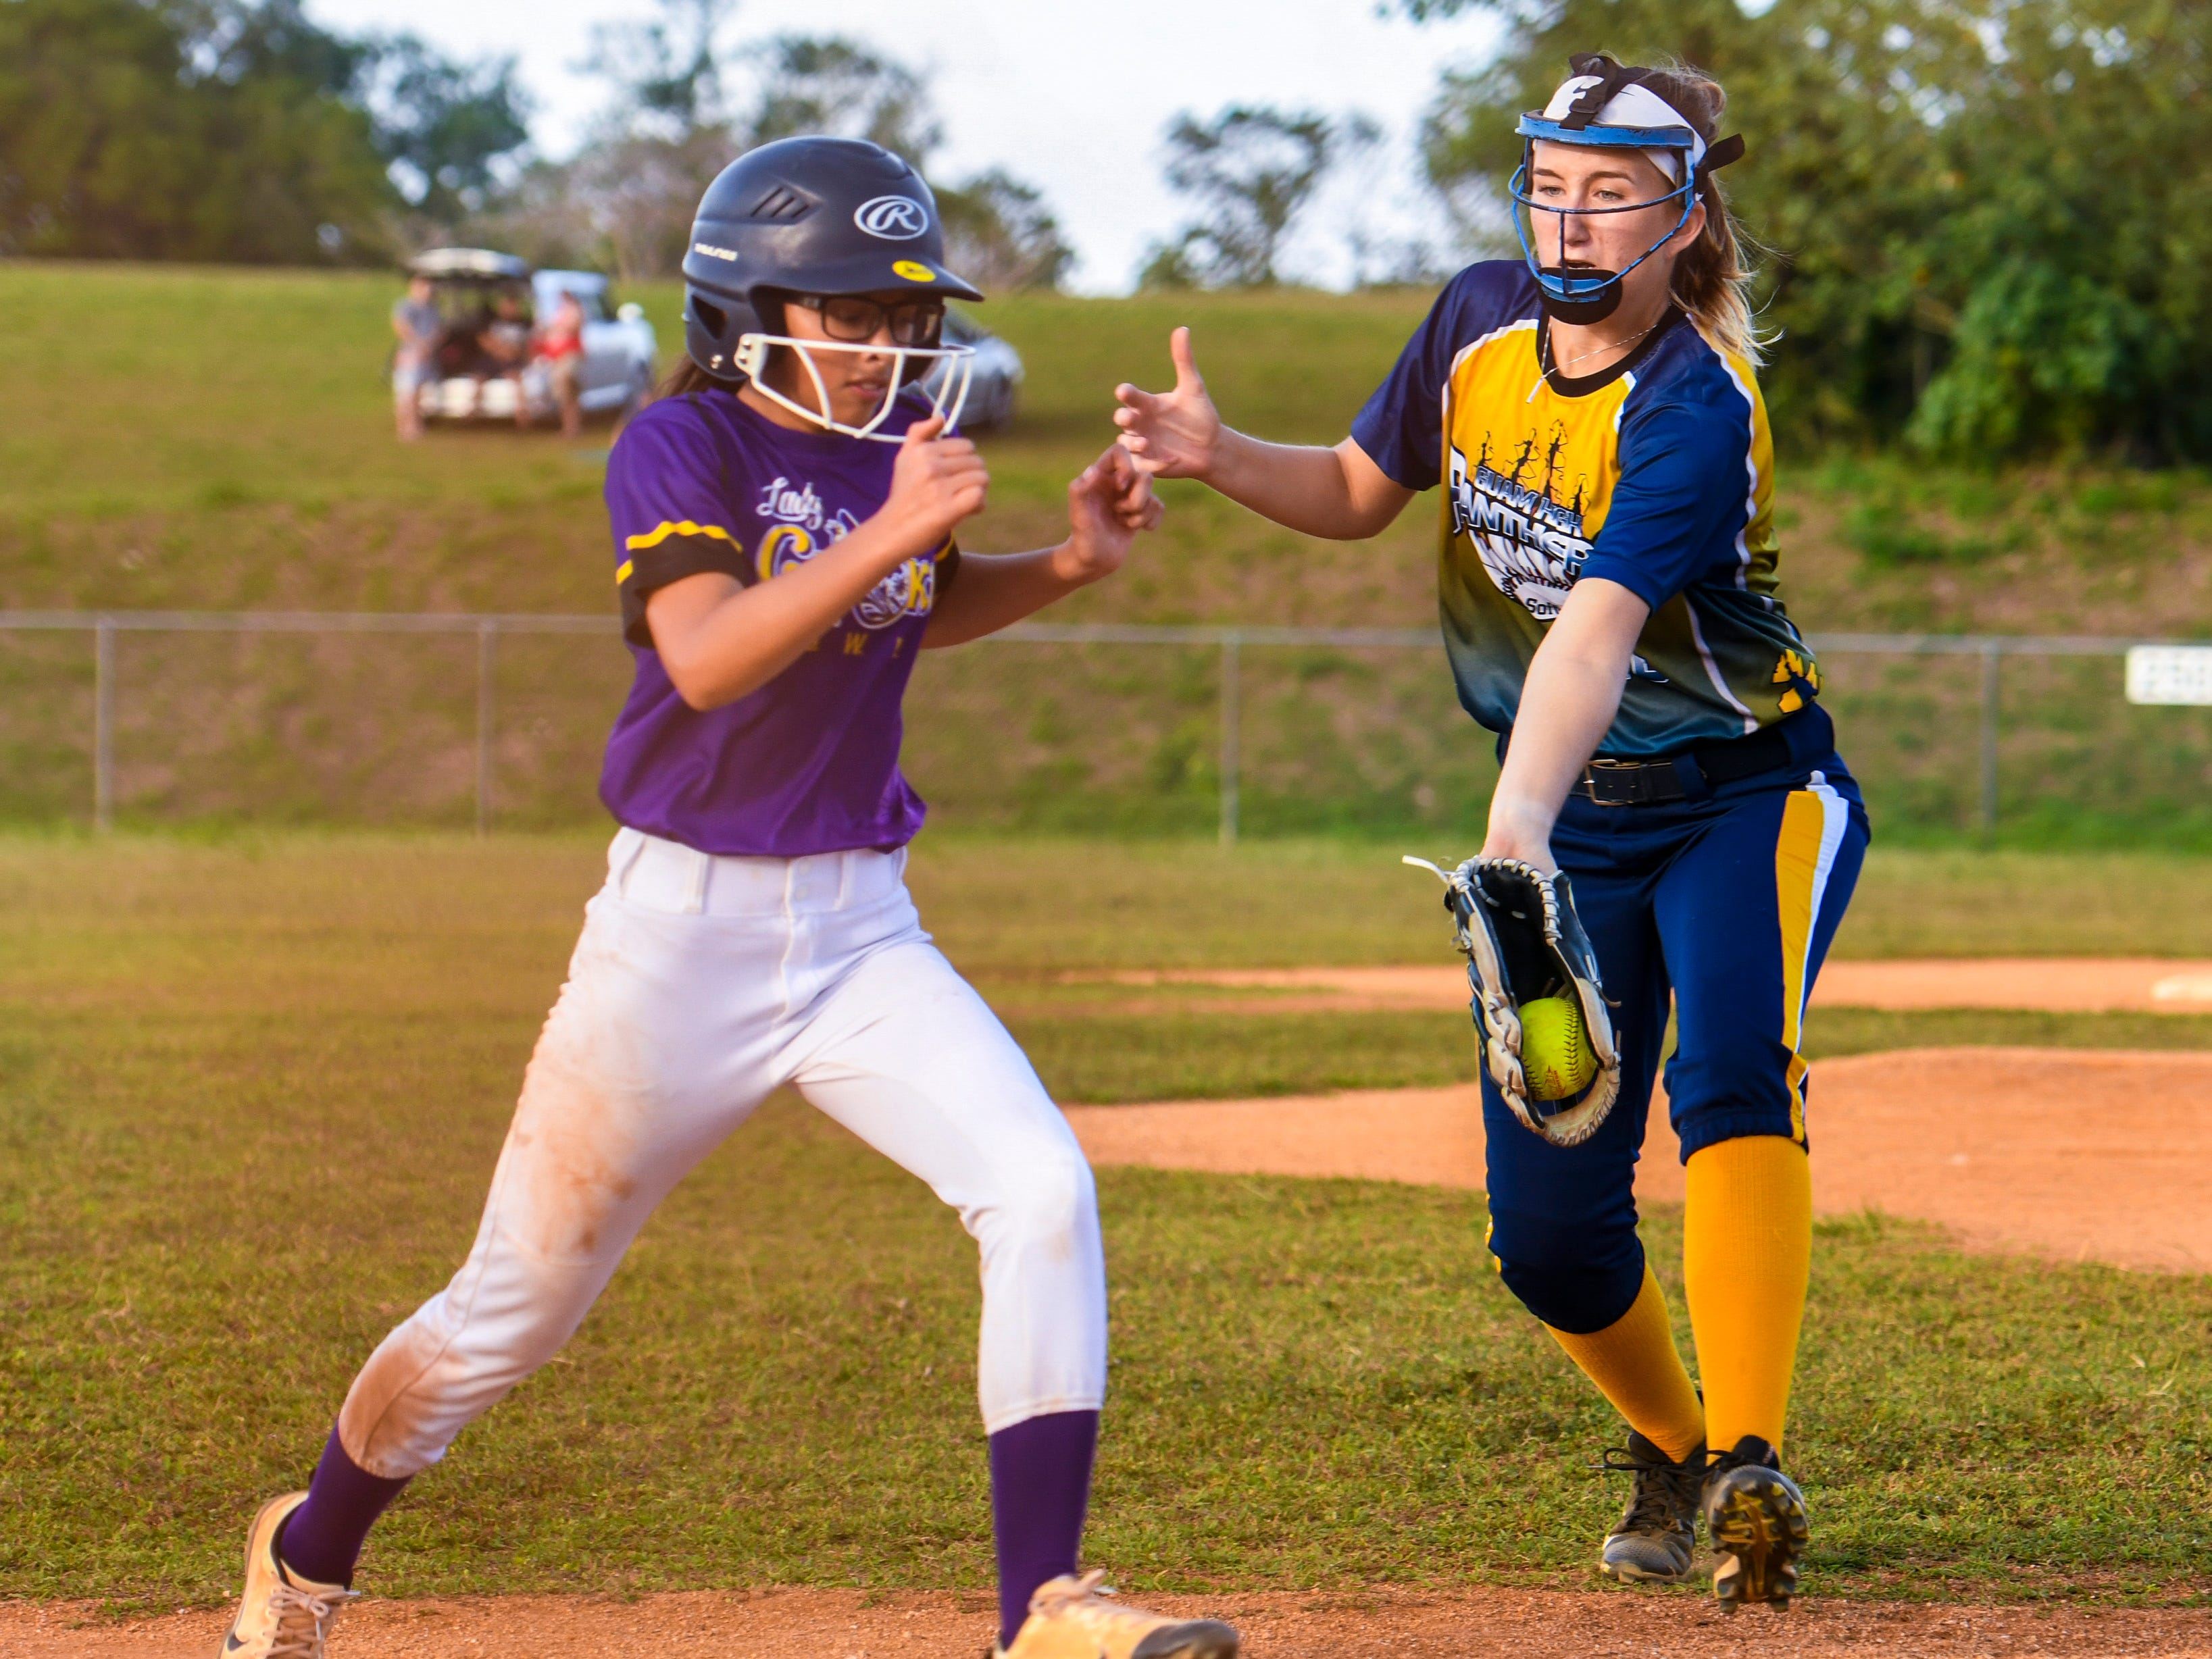 George Washington High School Geckos' Joresha Quichocho, slips by Guam High School Panthers' pitcher Alexis Blyth, on her sprint to home during an IIAAG girls softball game on the diamond at Okkodo High School in Dededo on Thursday, March 7, 2019.